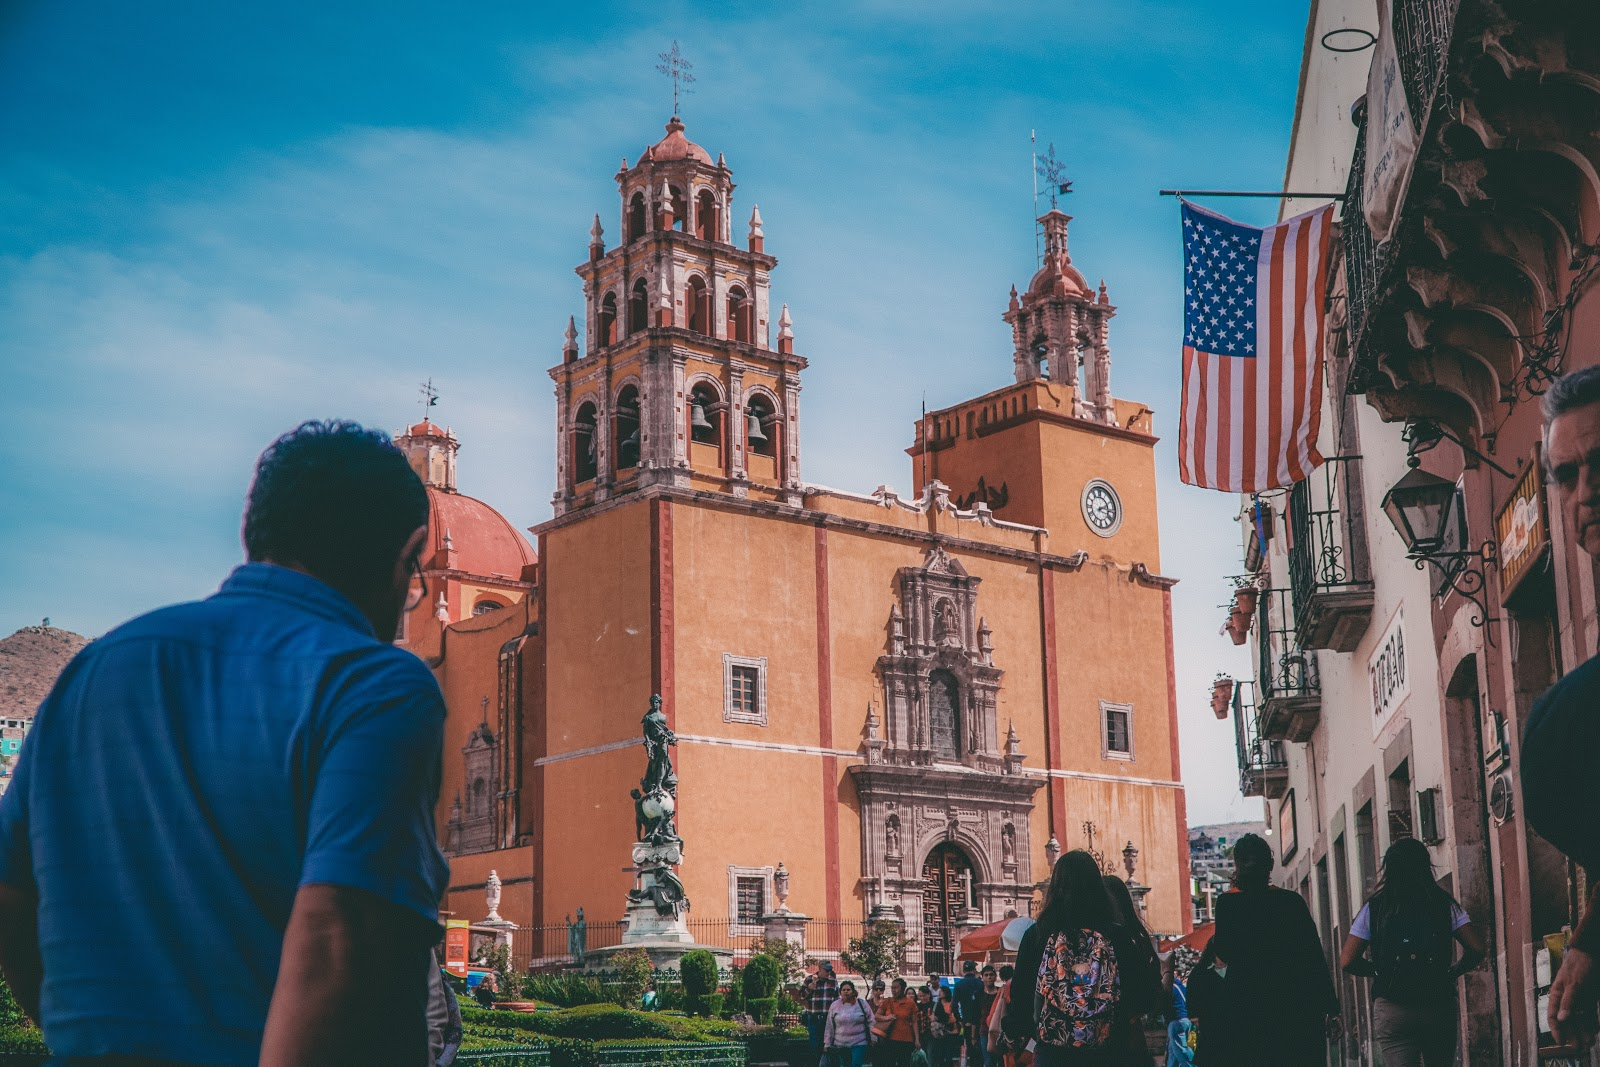 Best Places to Visit in Guanajuato, Mexico by travel blog, The Common Traveler: Basilica of Our Lady of Guanajuato, Mexico